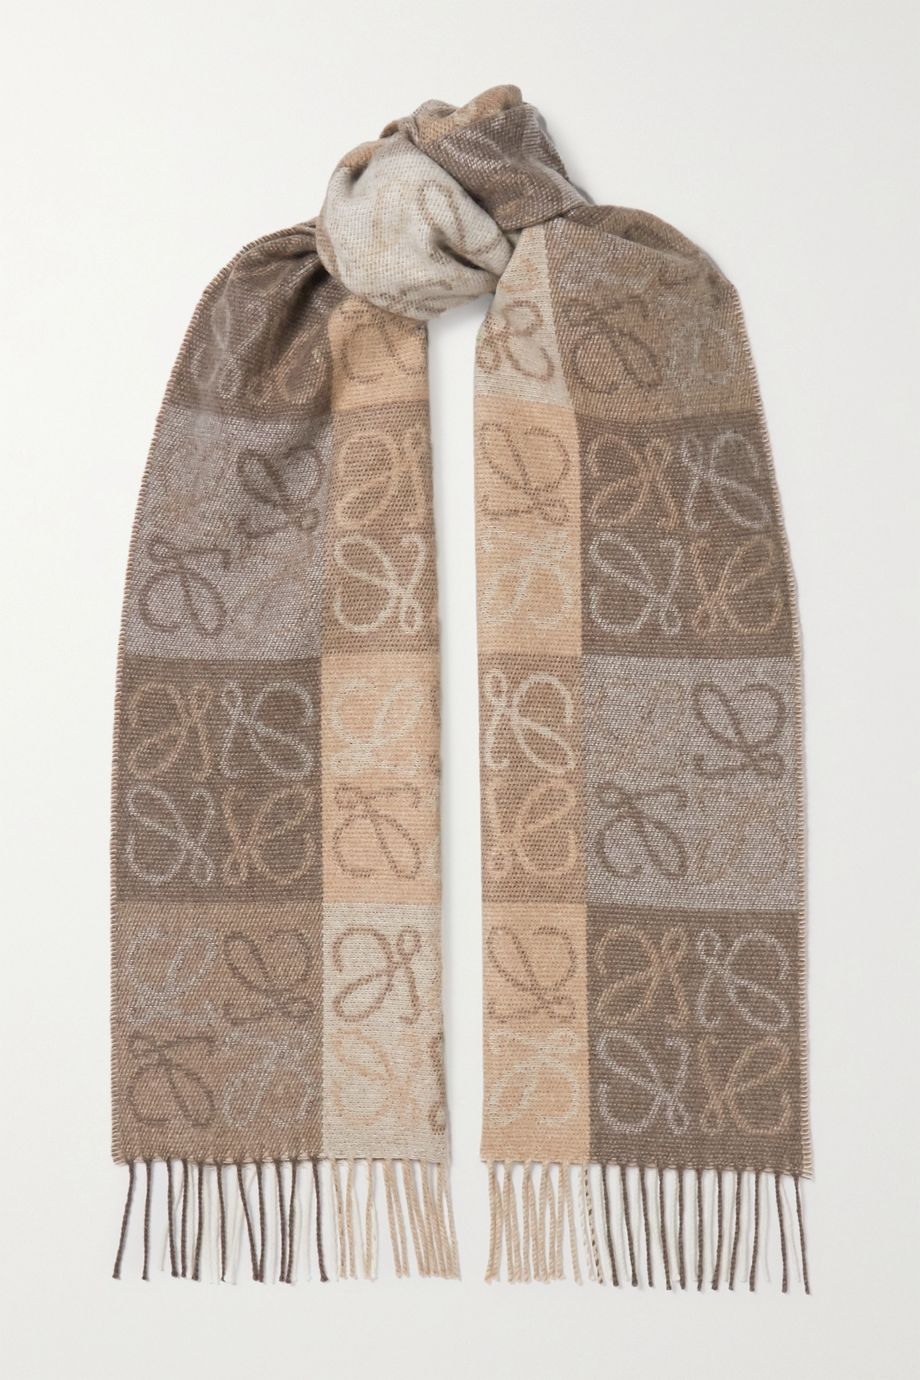 Loewe Fringed wool and cashmere-blend jacquard scarf